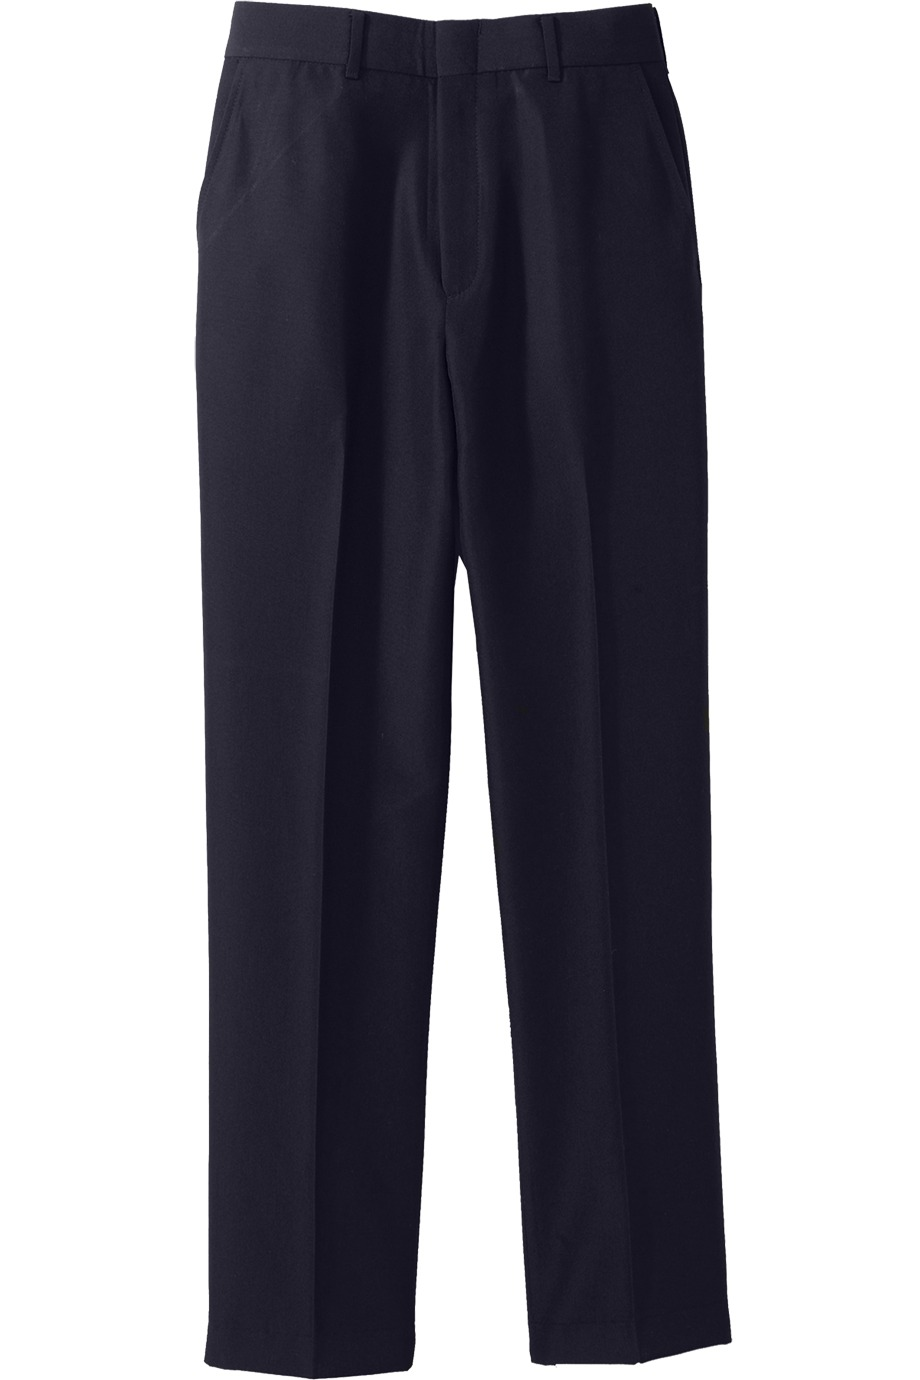 Edwards Garment 2720 - Men's Washable Wool Blend Flat Front Pant